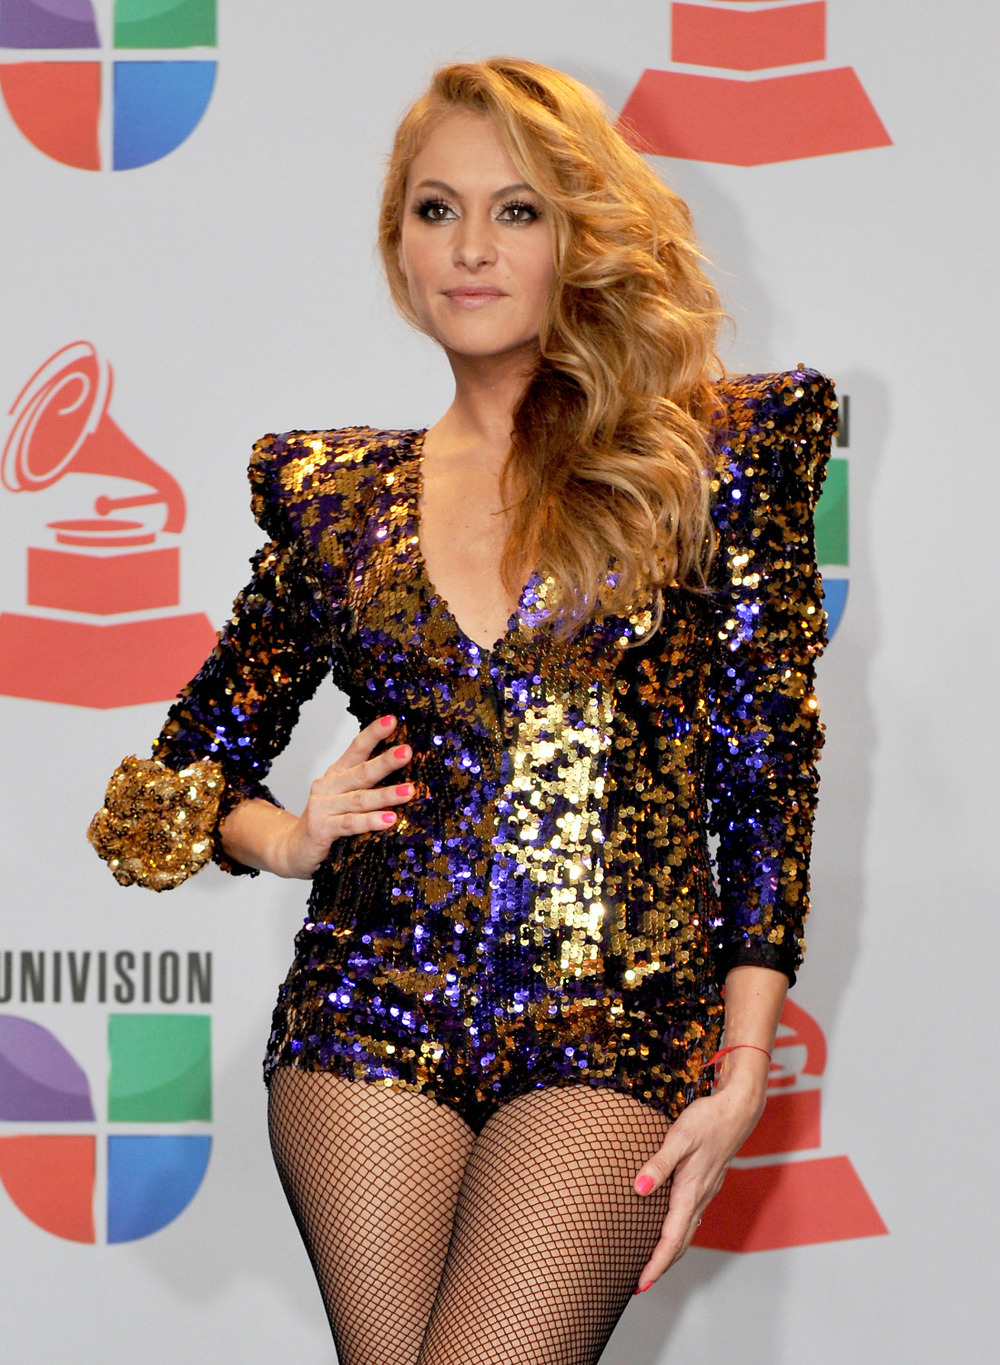 X Factor 2013: How Much Does Judge Paulina Rubio Make?